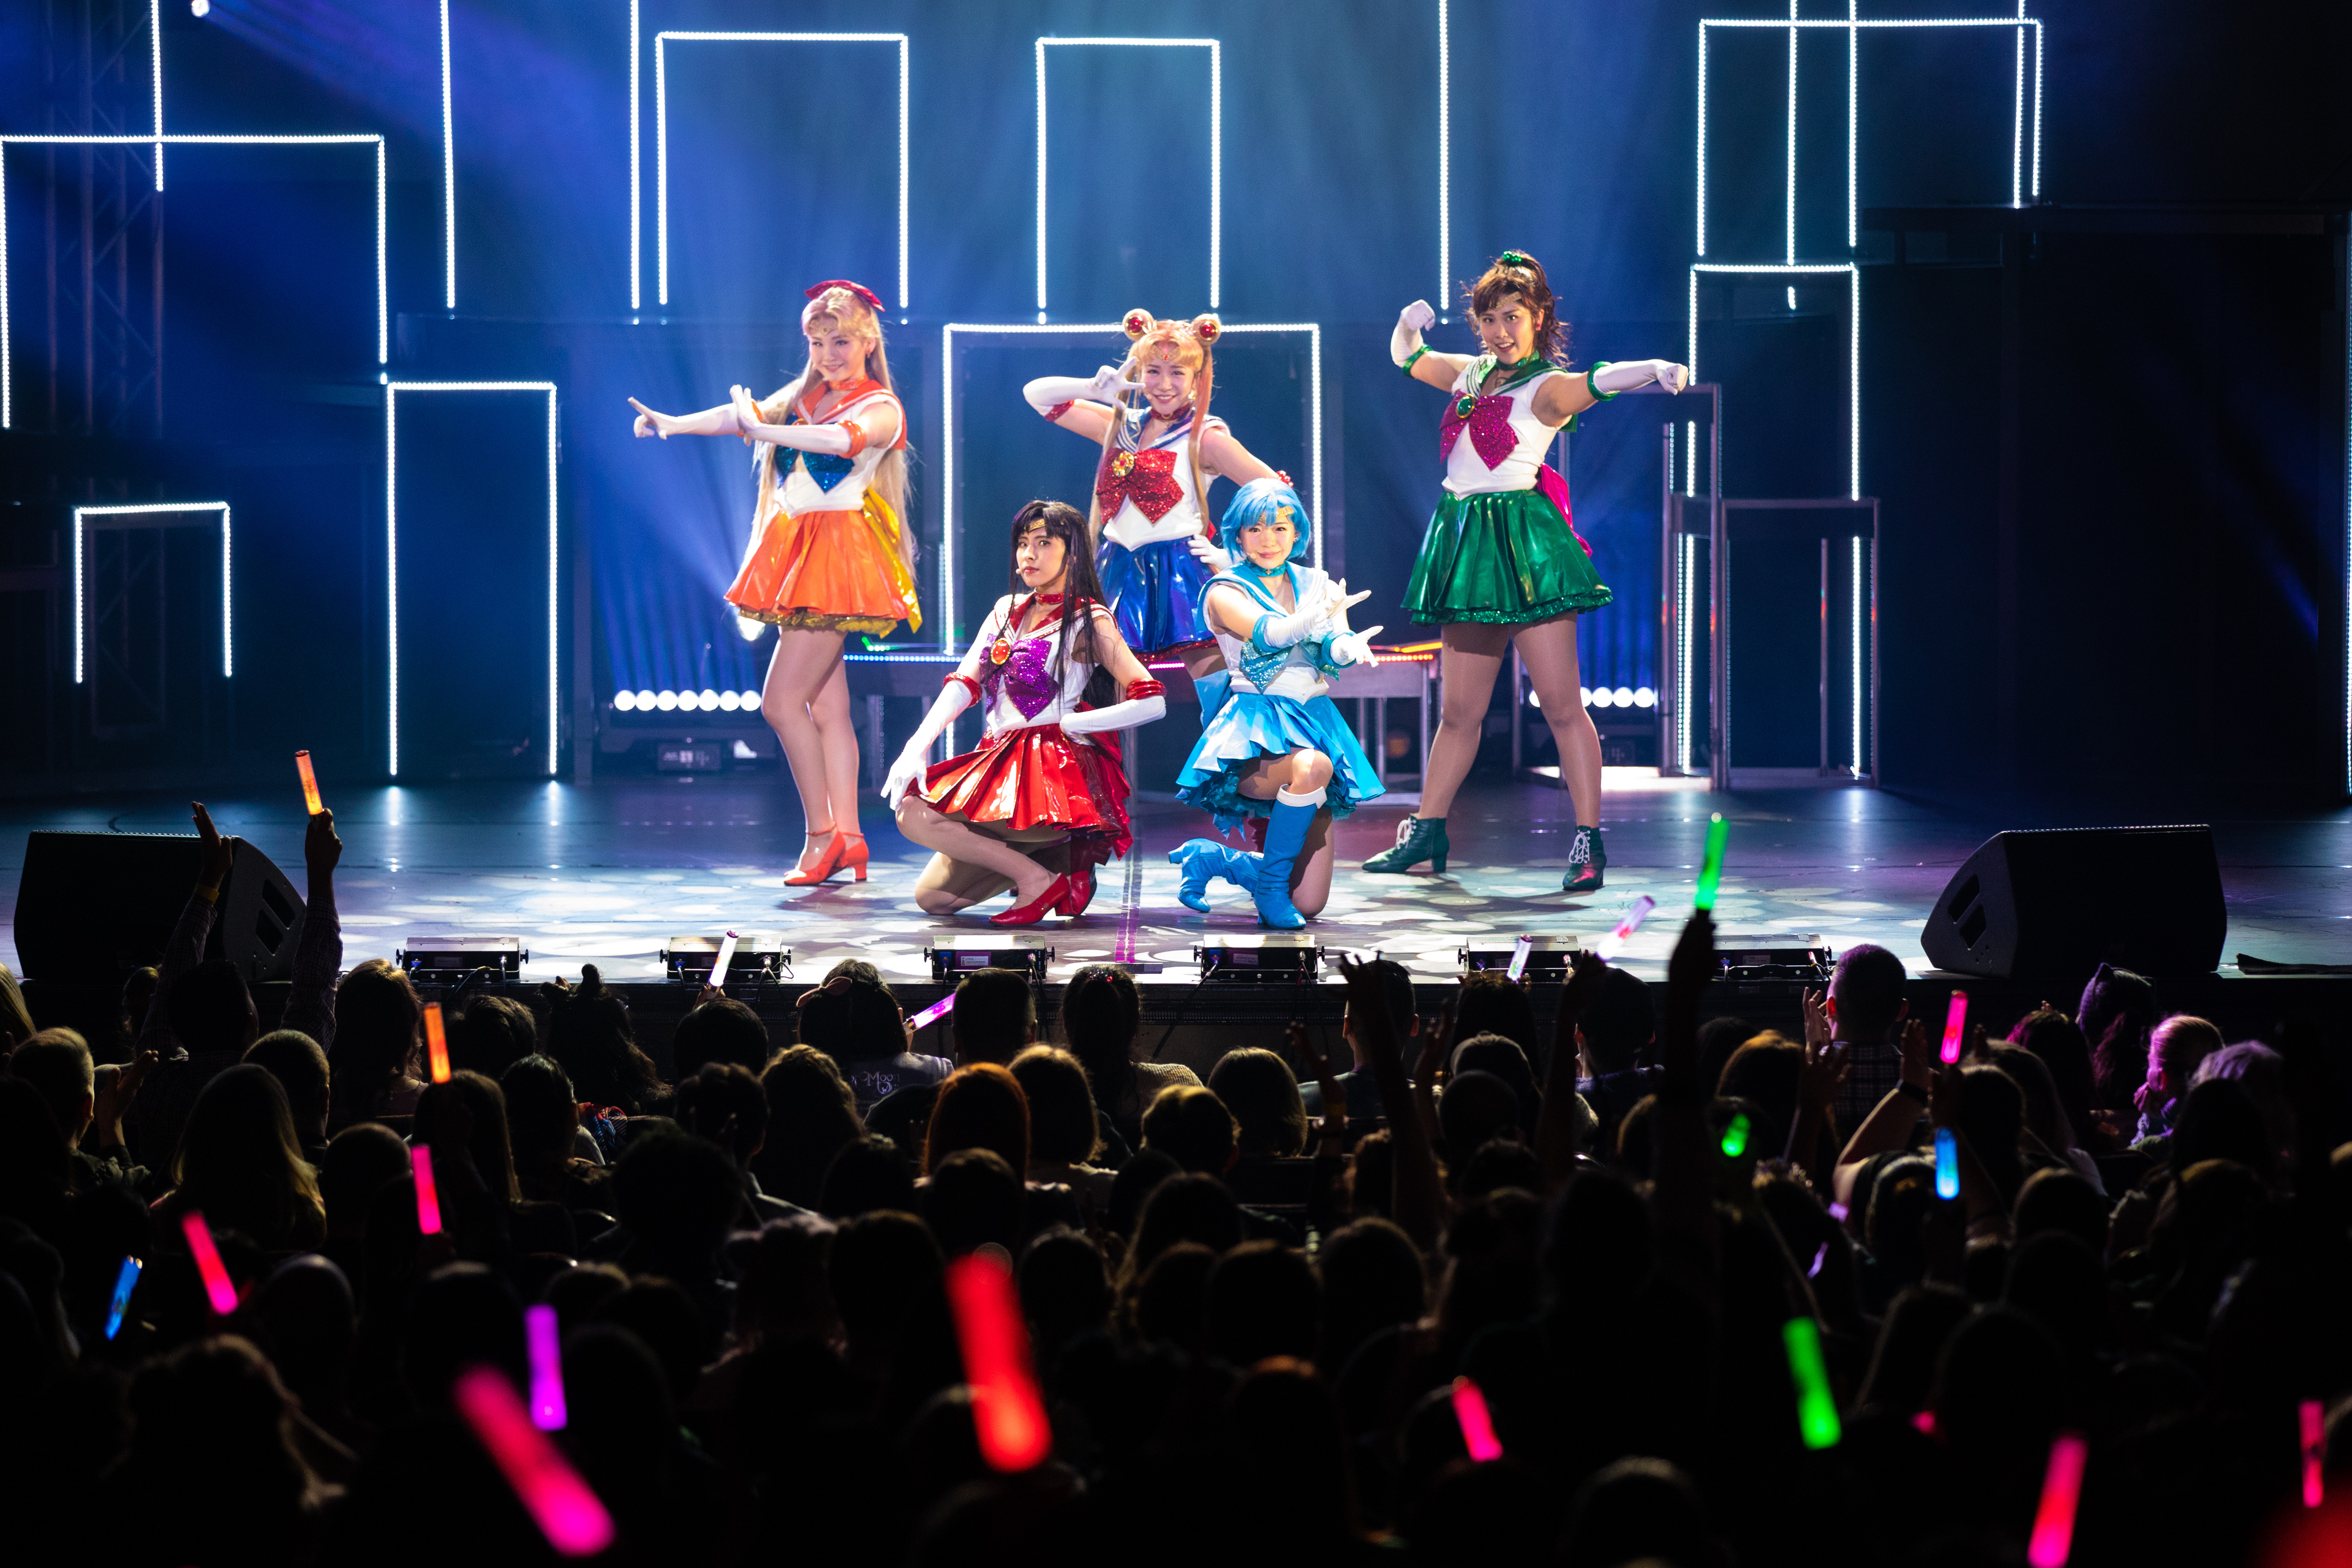 """""""Pretty Guardian Sailor Moon"""" The Super Liveのアメリカ公演チケットSOLD OUT イメージ画像"""